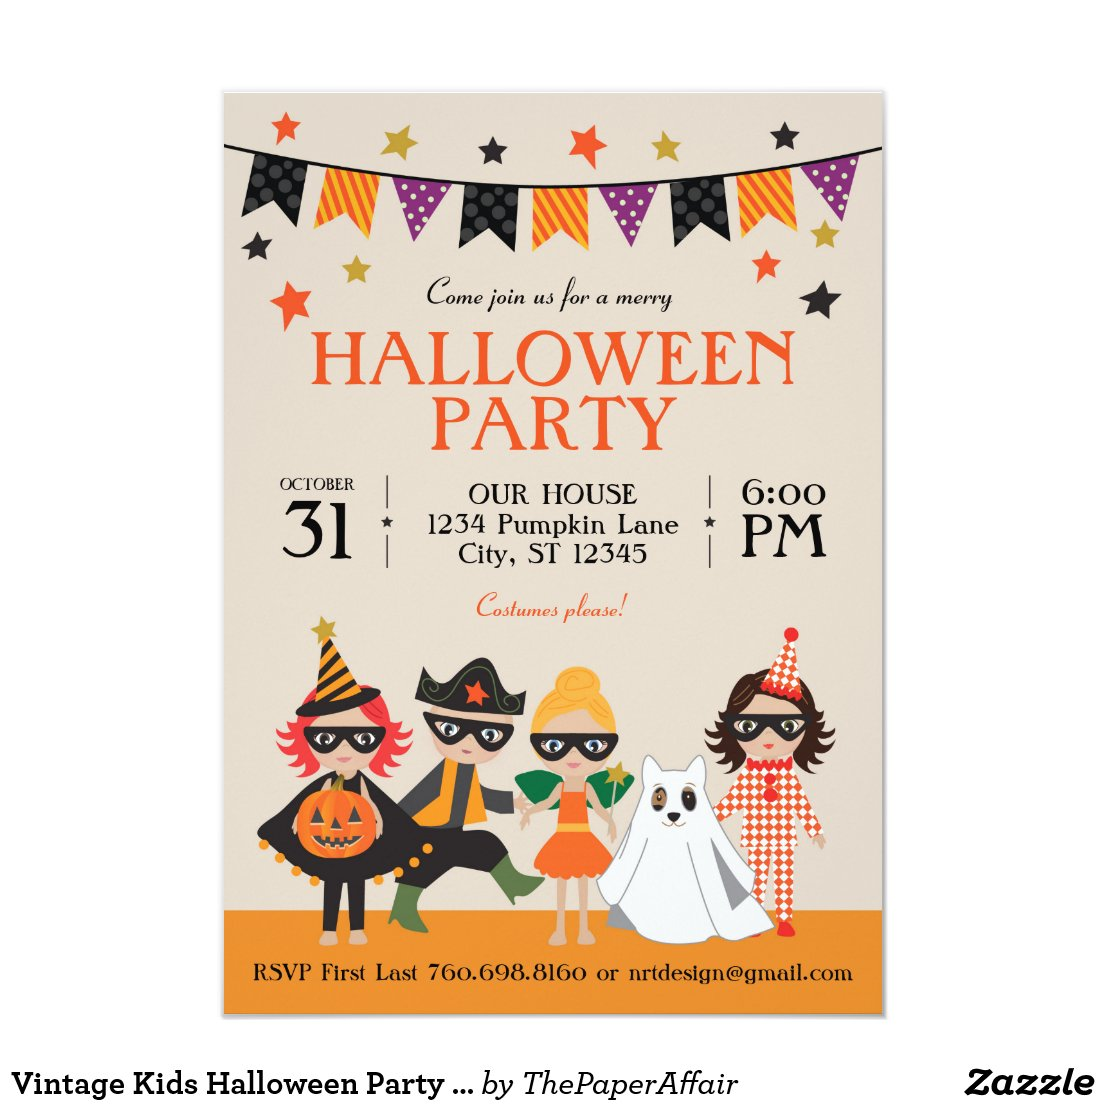 Vintage Kids Halloween Party Invitation